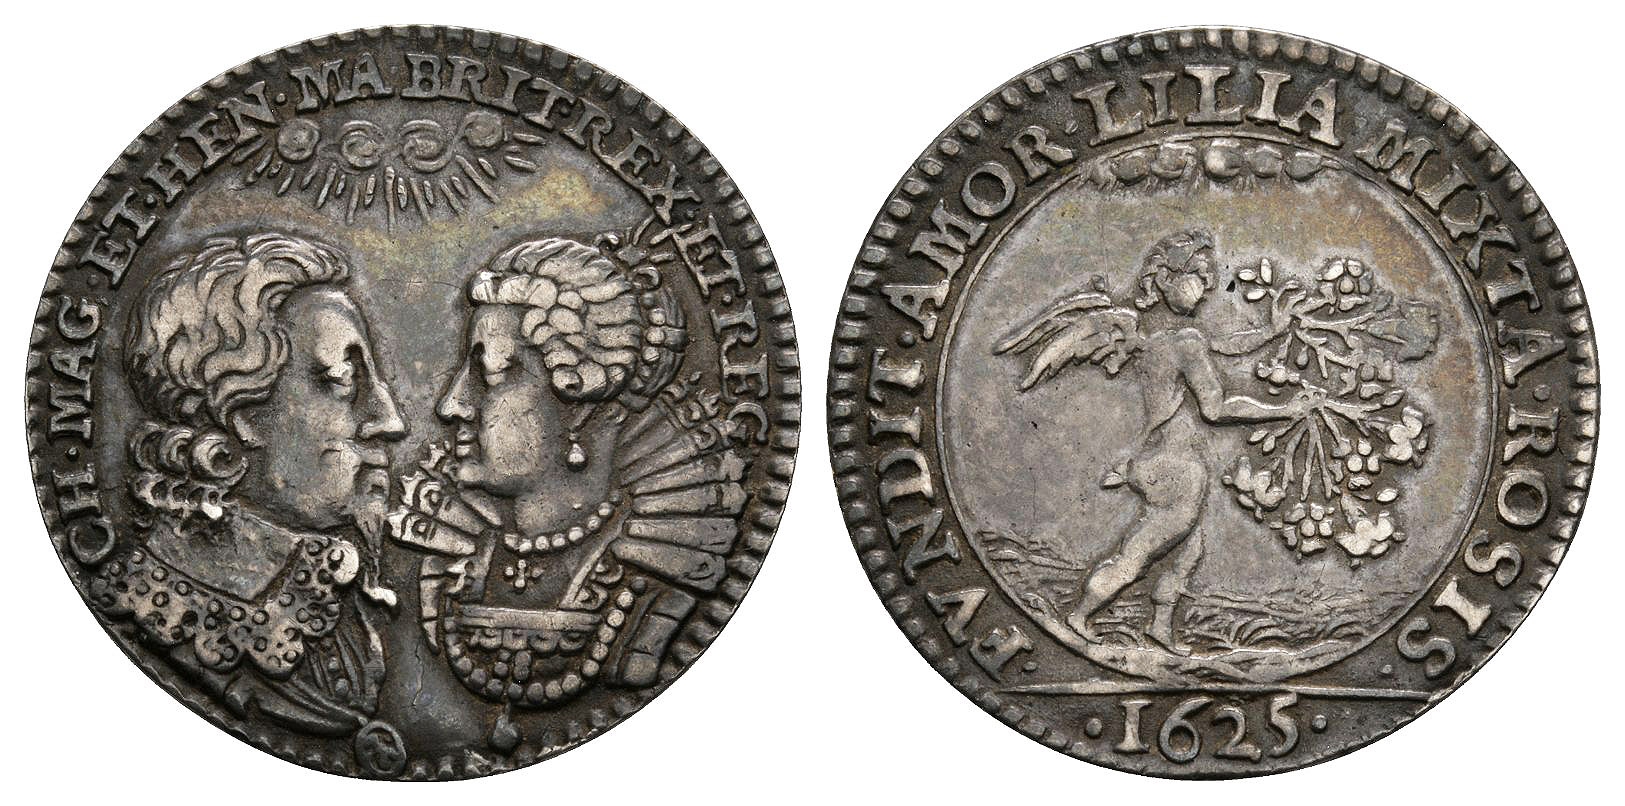 British Commemorative Medals - Charles I - 1625 - Silver Marriage Jeton